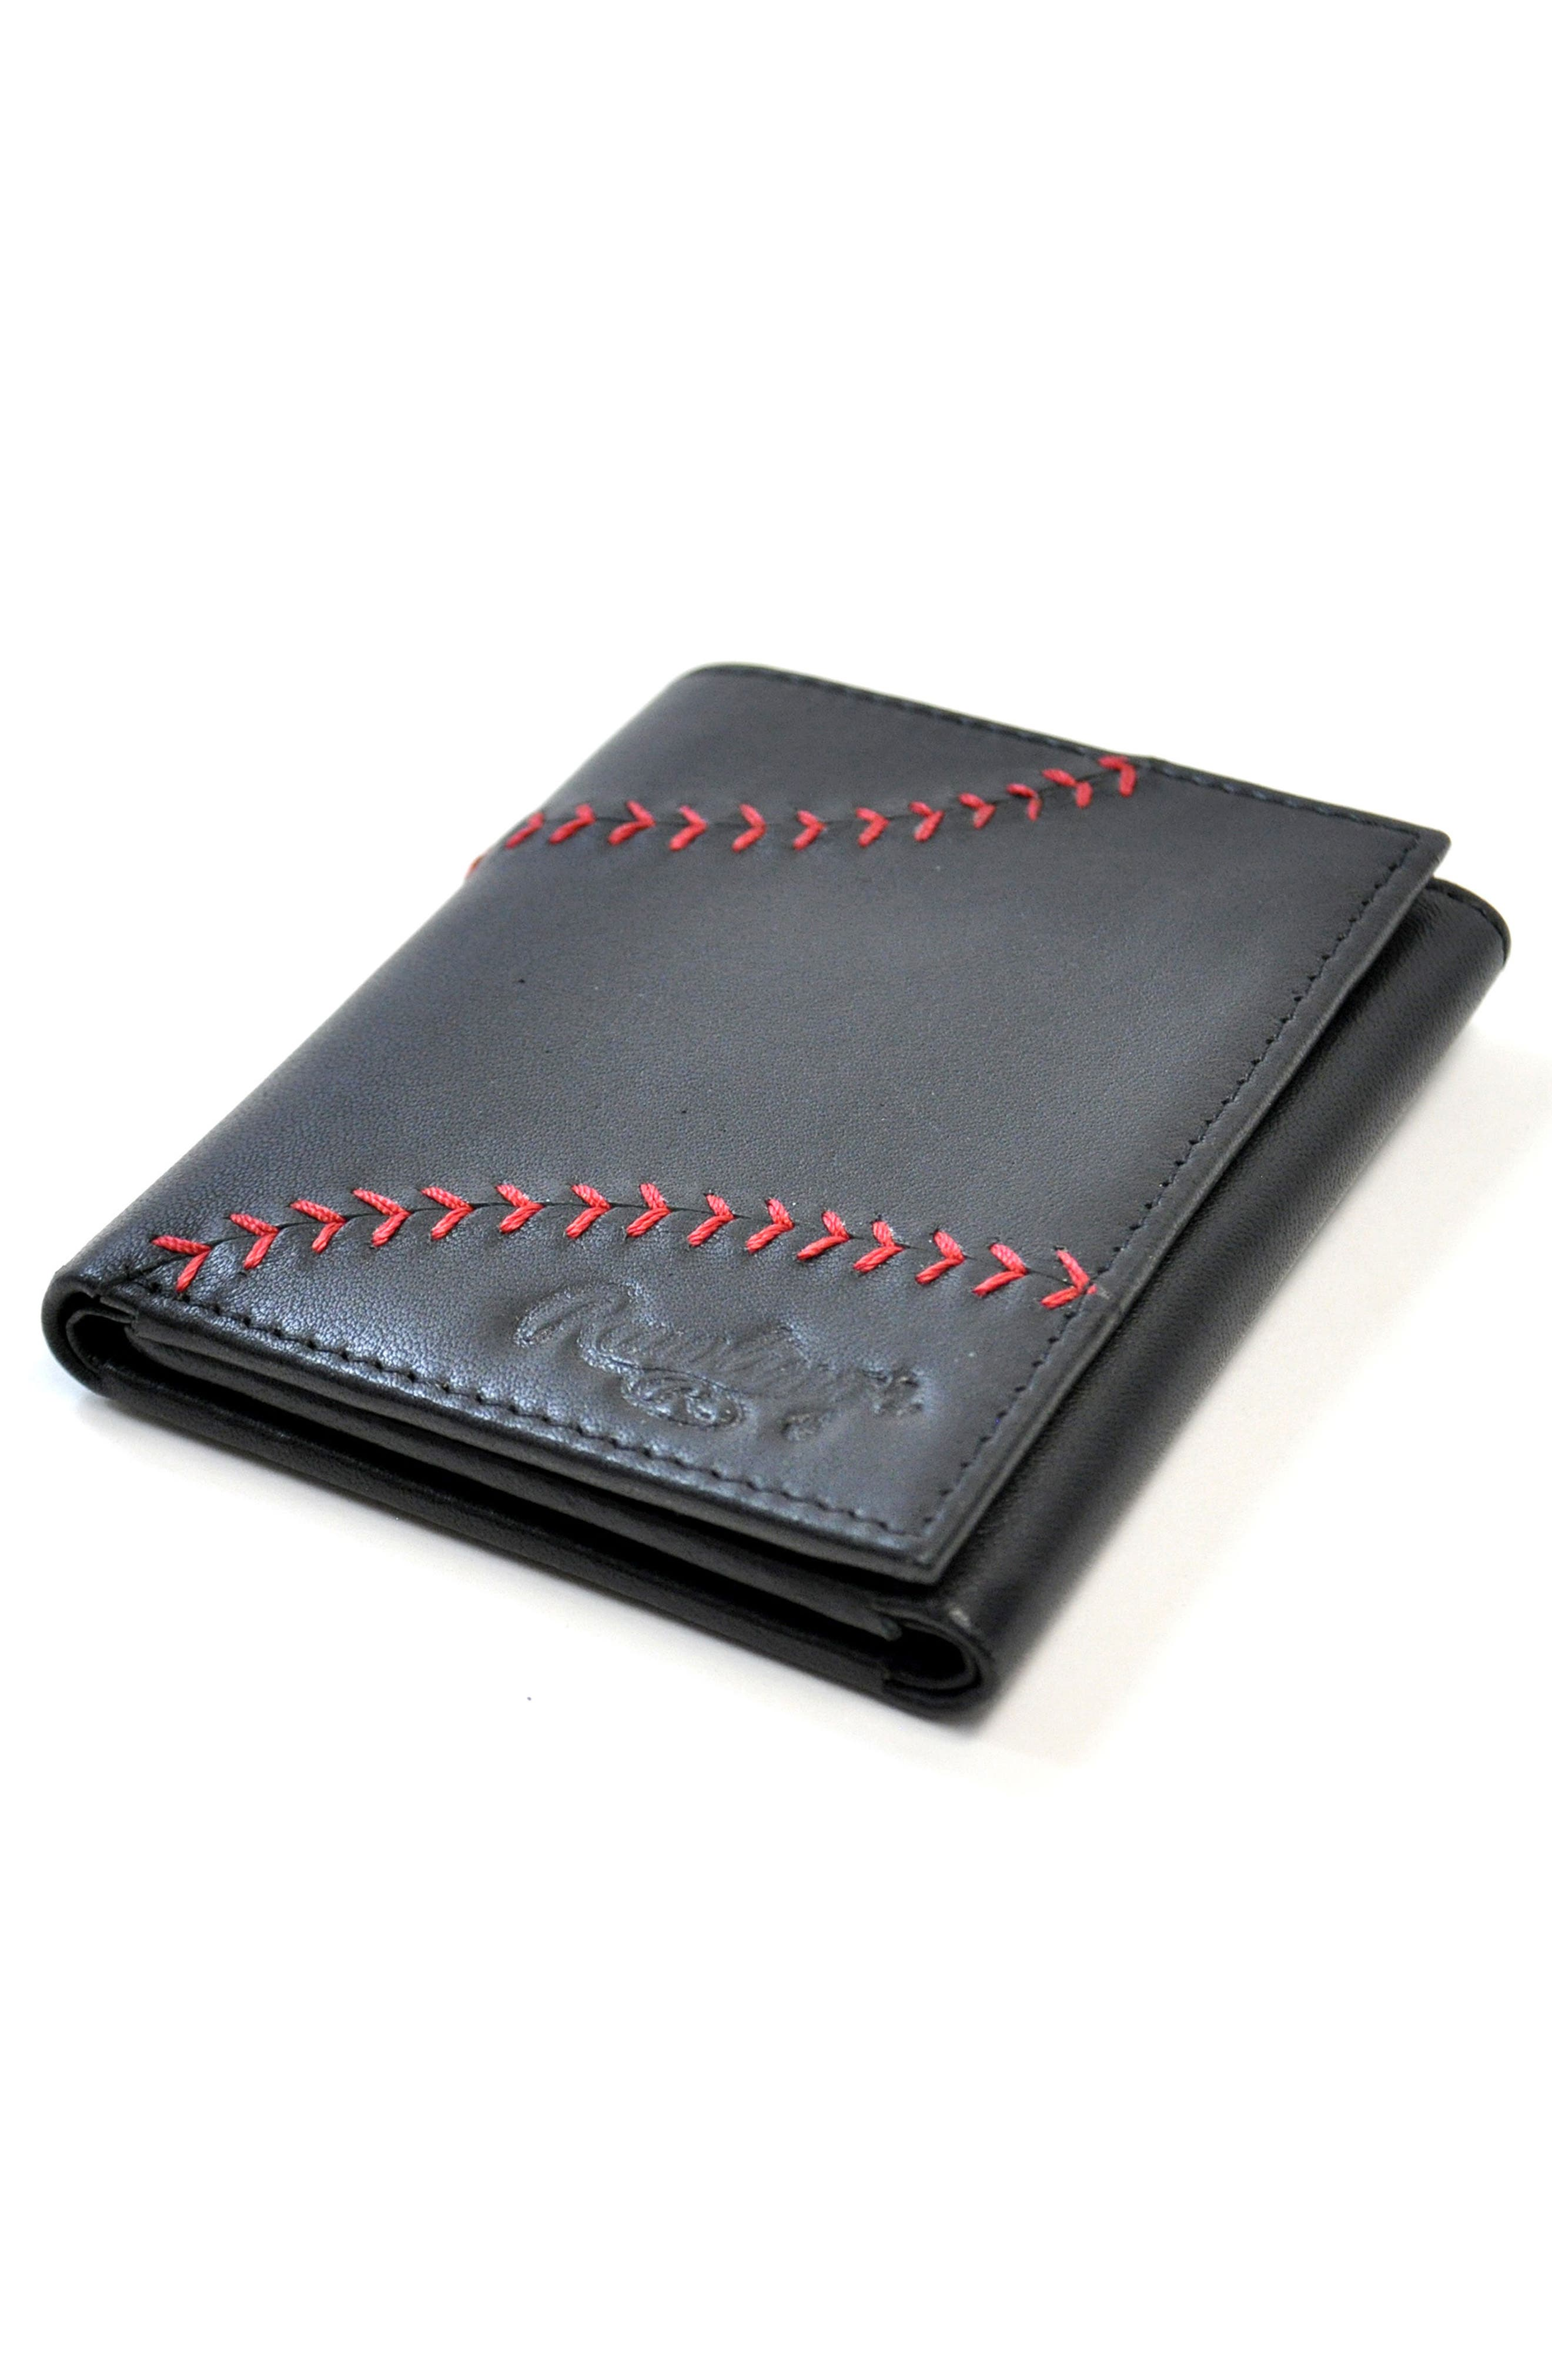 Baseball Stitch Leather Trifold Wallet,                             Alternate thumbnail 7, color,                             001